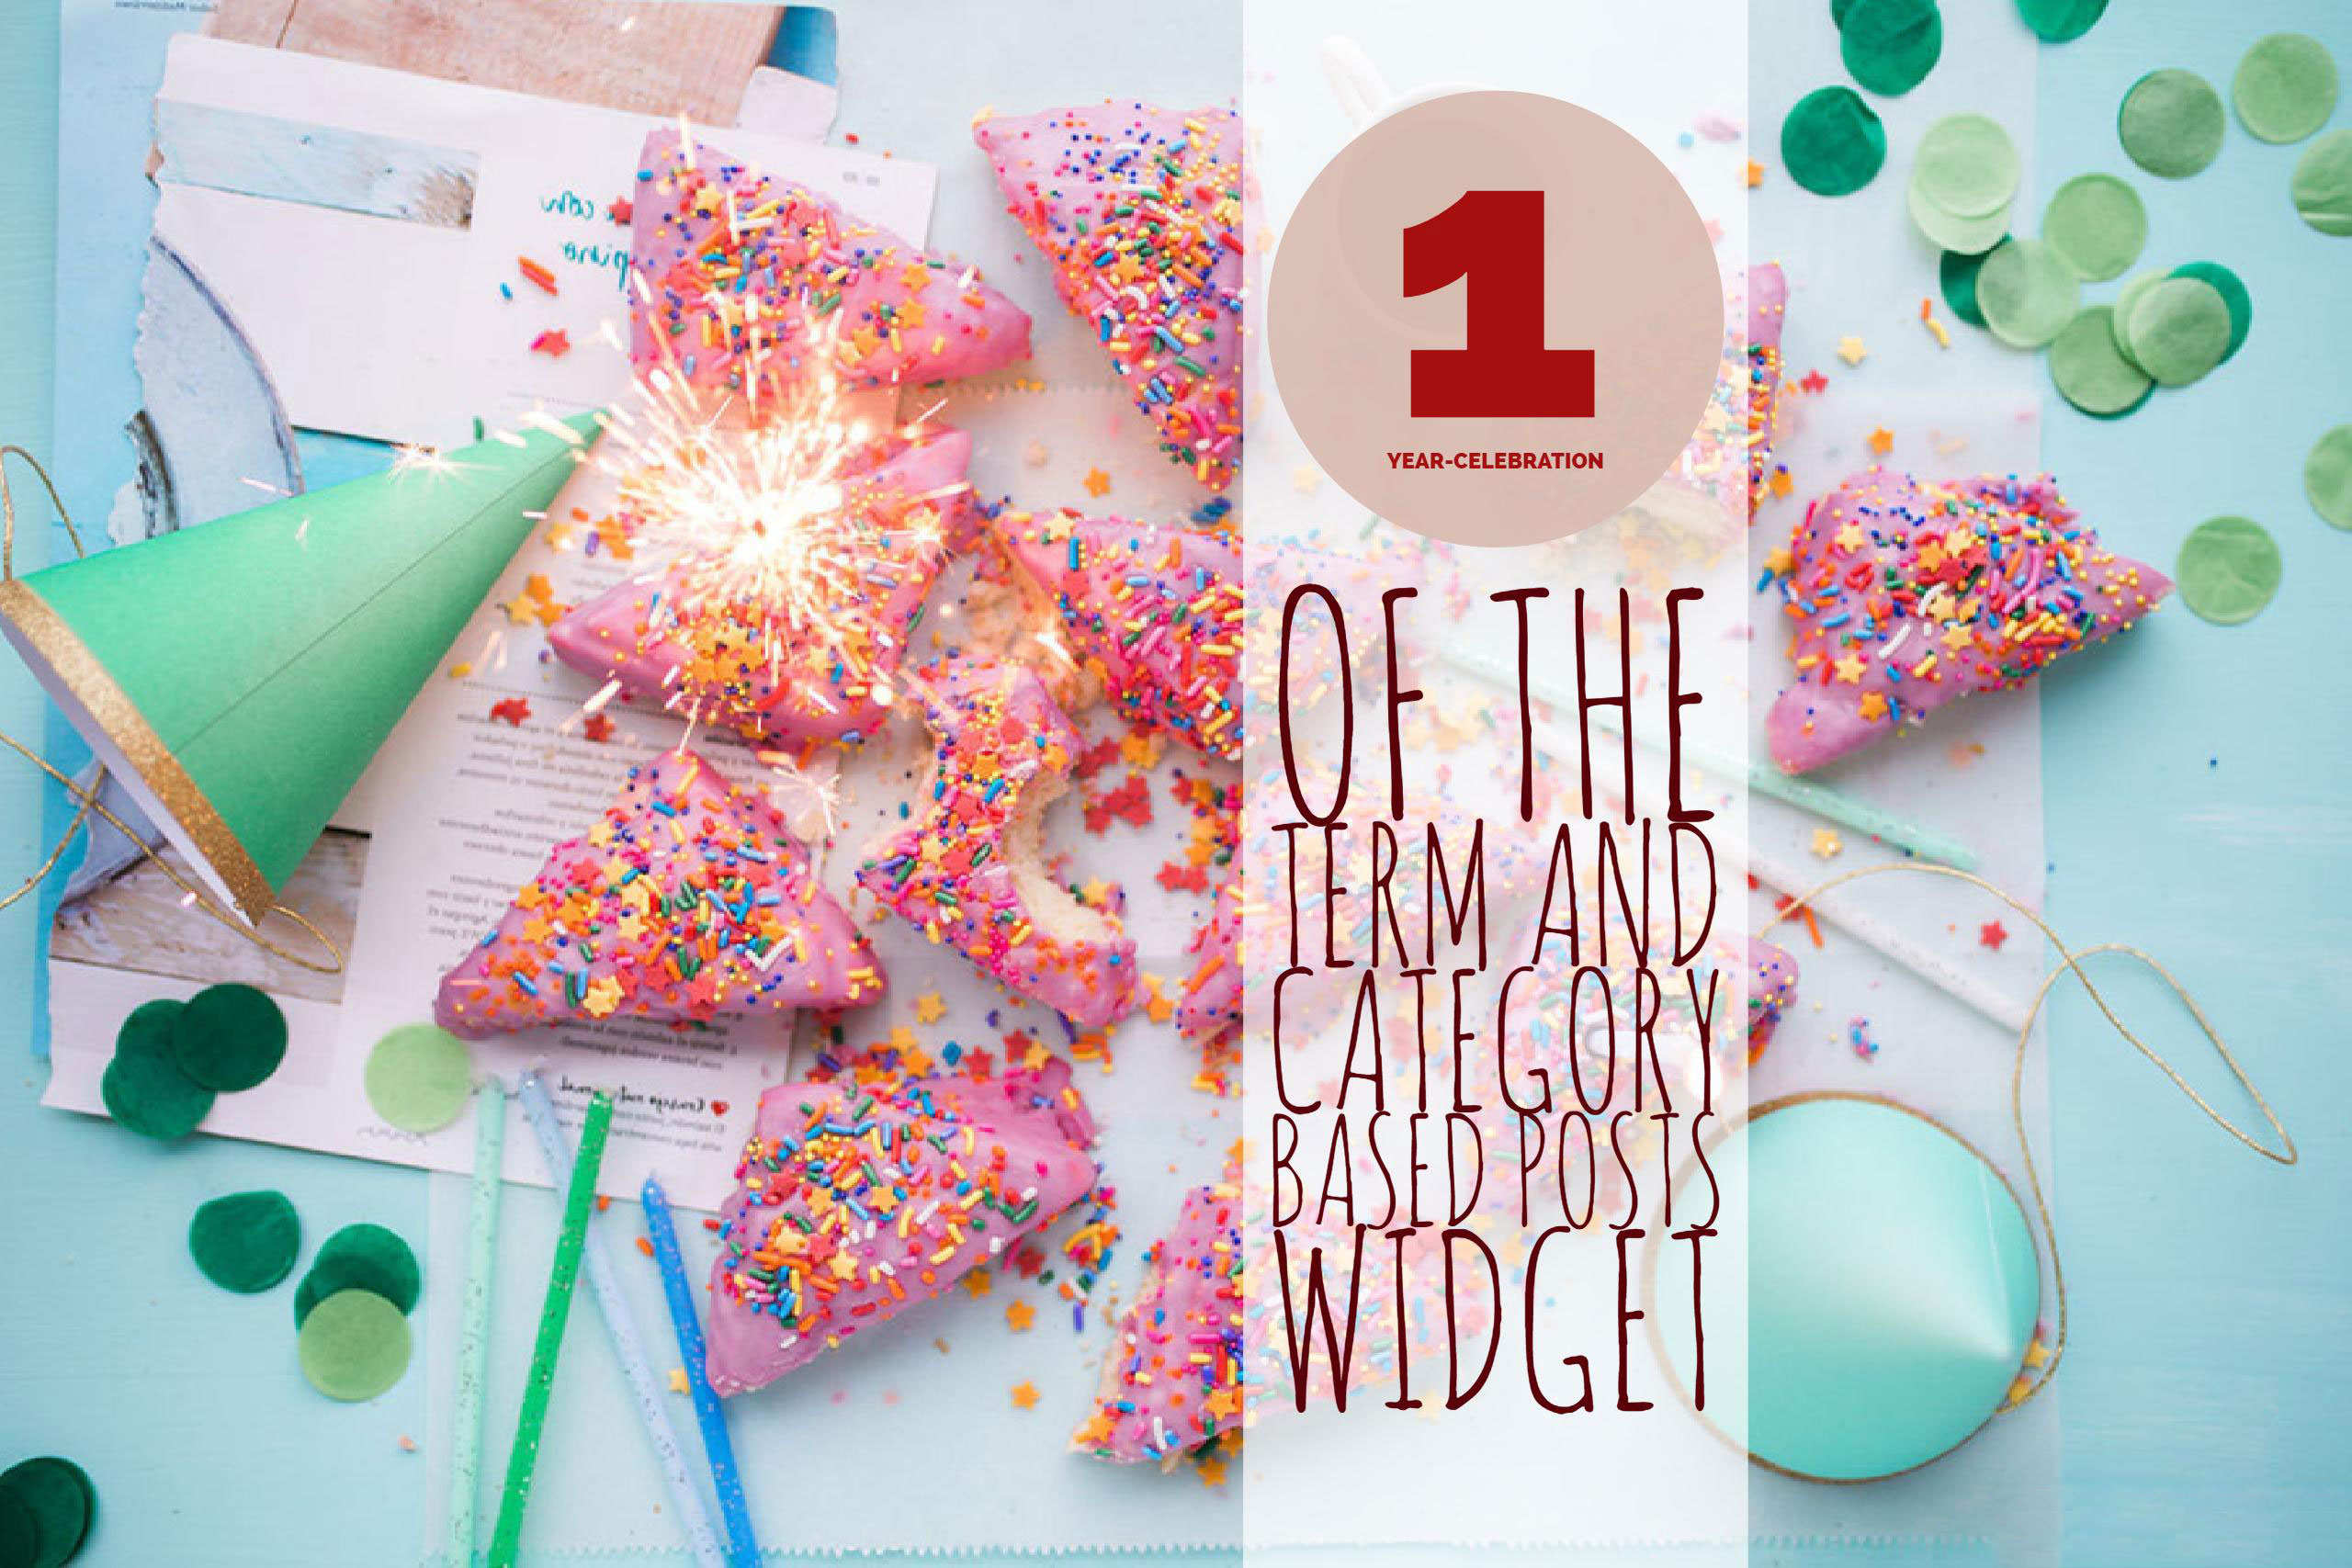 We celebrate Term and Category based Posts Widget birthday